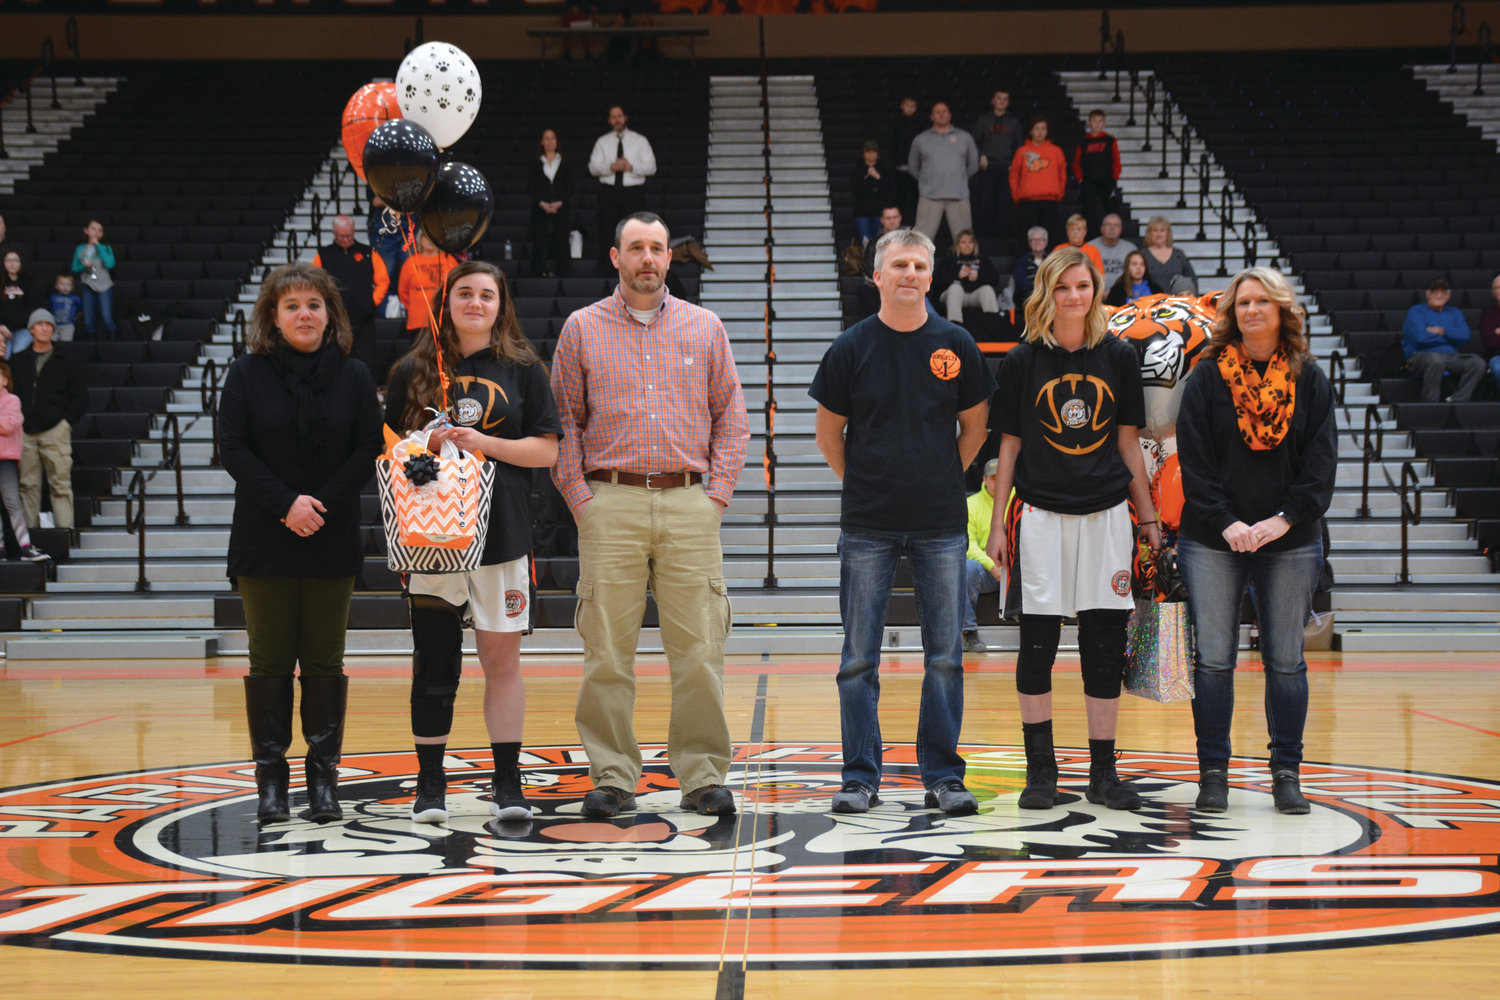 Prior to the start of the Varsity contest between the Paris Lady Tigers and conference opponent the Flora Lady Wolves, the two Seniors on the Lady Tigers roster were recognized along with their parents.  Left to right, Lisa Roush, Emilee Roush, Jeff Roush, Mike Westerfield, Brooklyn Westerfield and Tonya Westerfield.